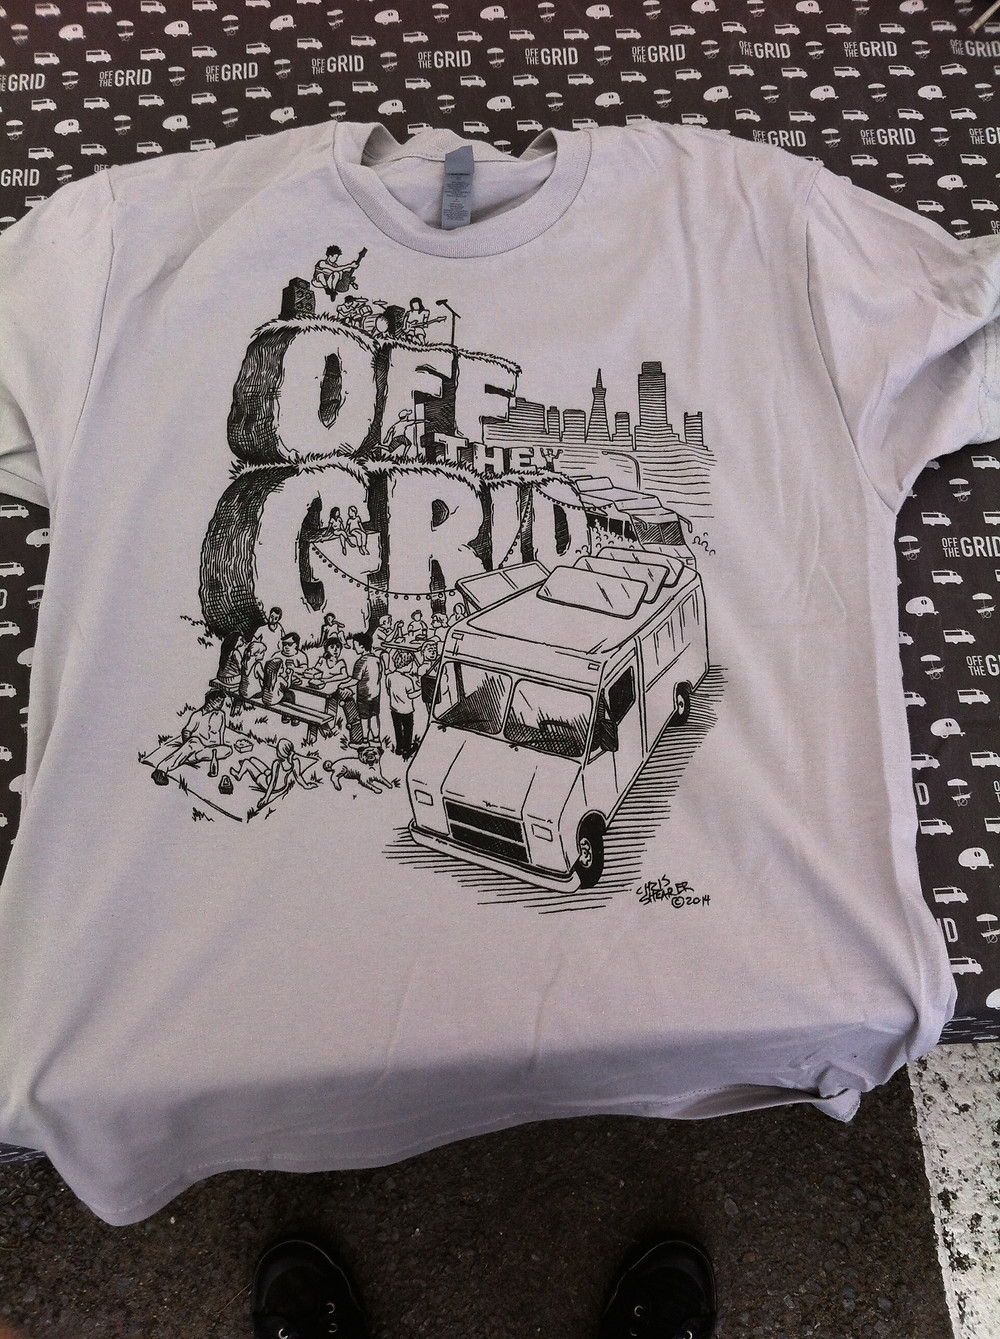 Off The Grid T-shirt Design